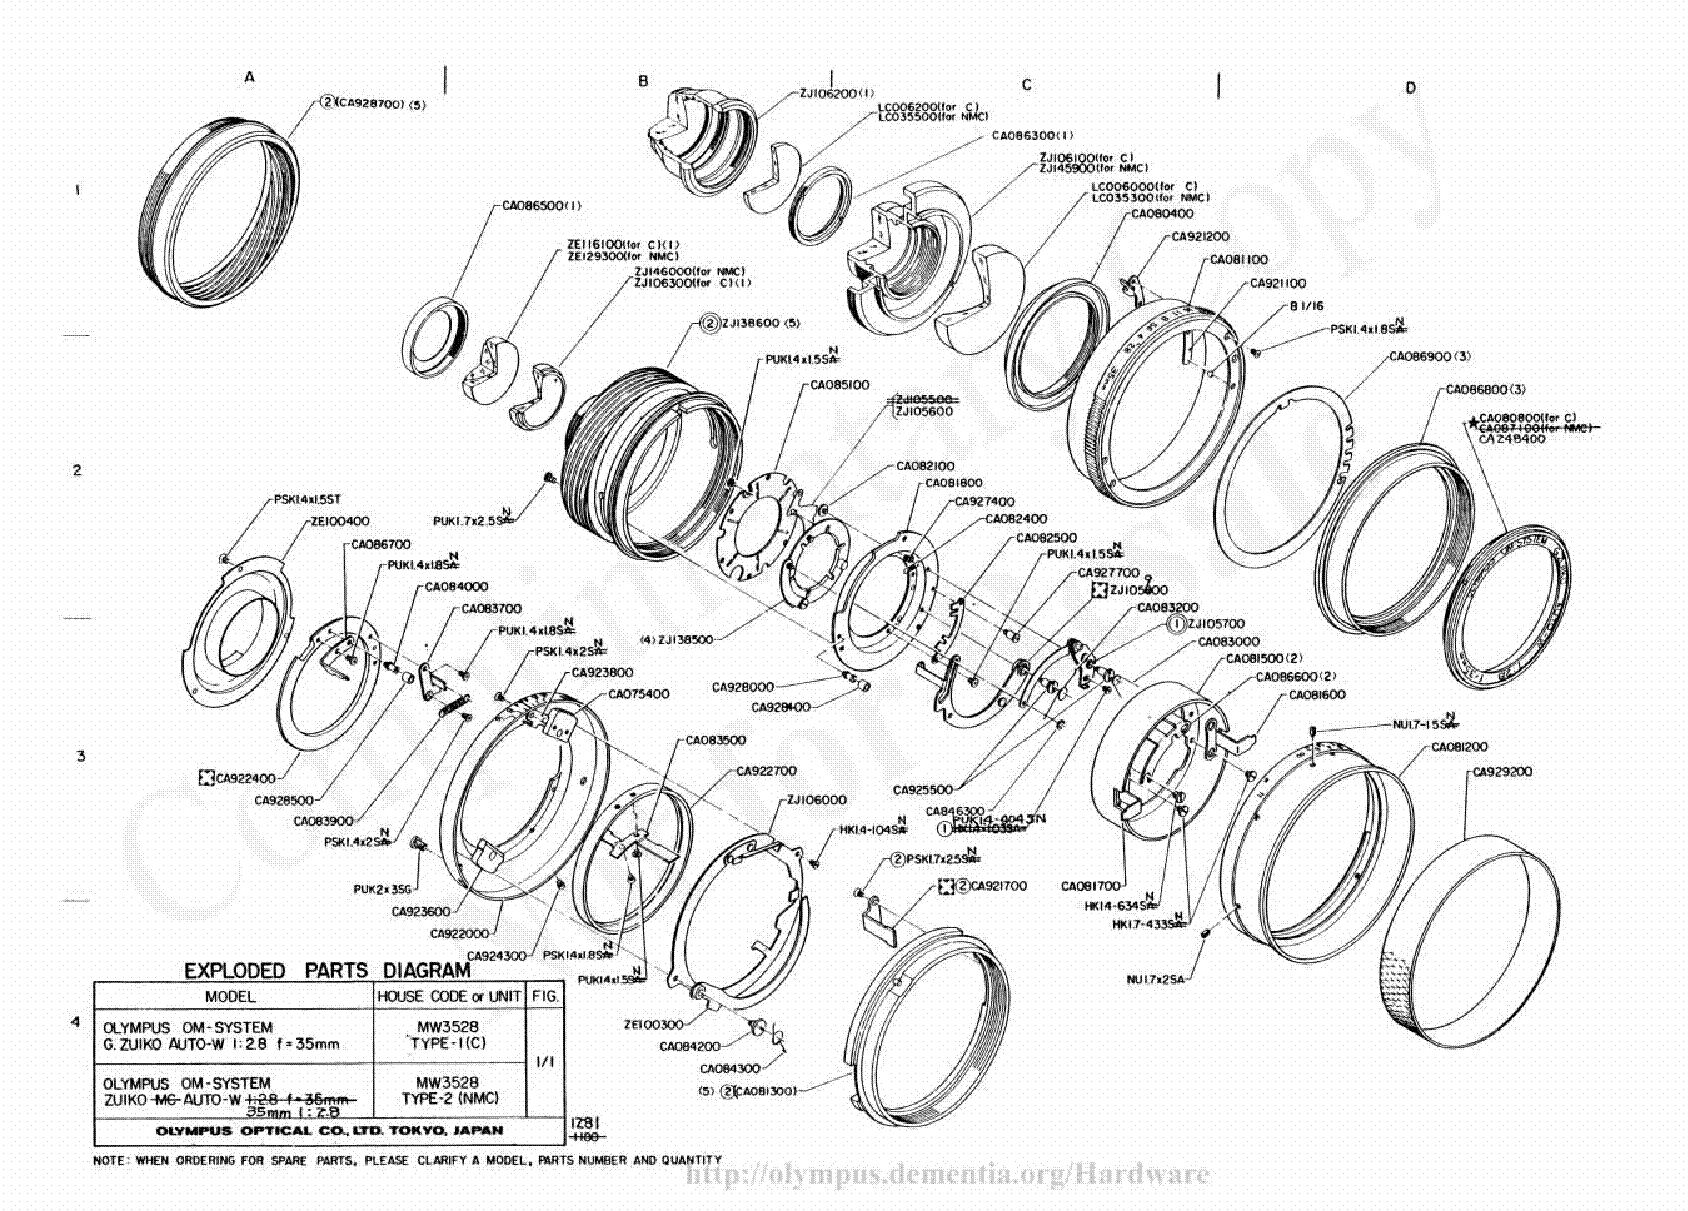 Olympus 35mm F2 8 Exploded Parts Diagram Service Manual